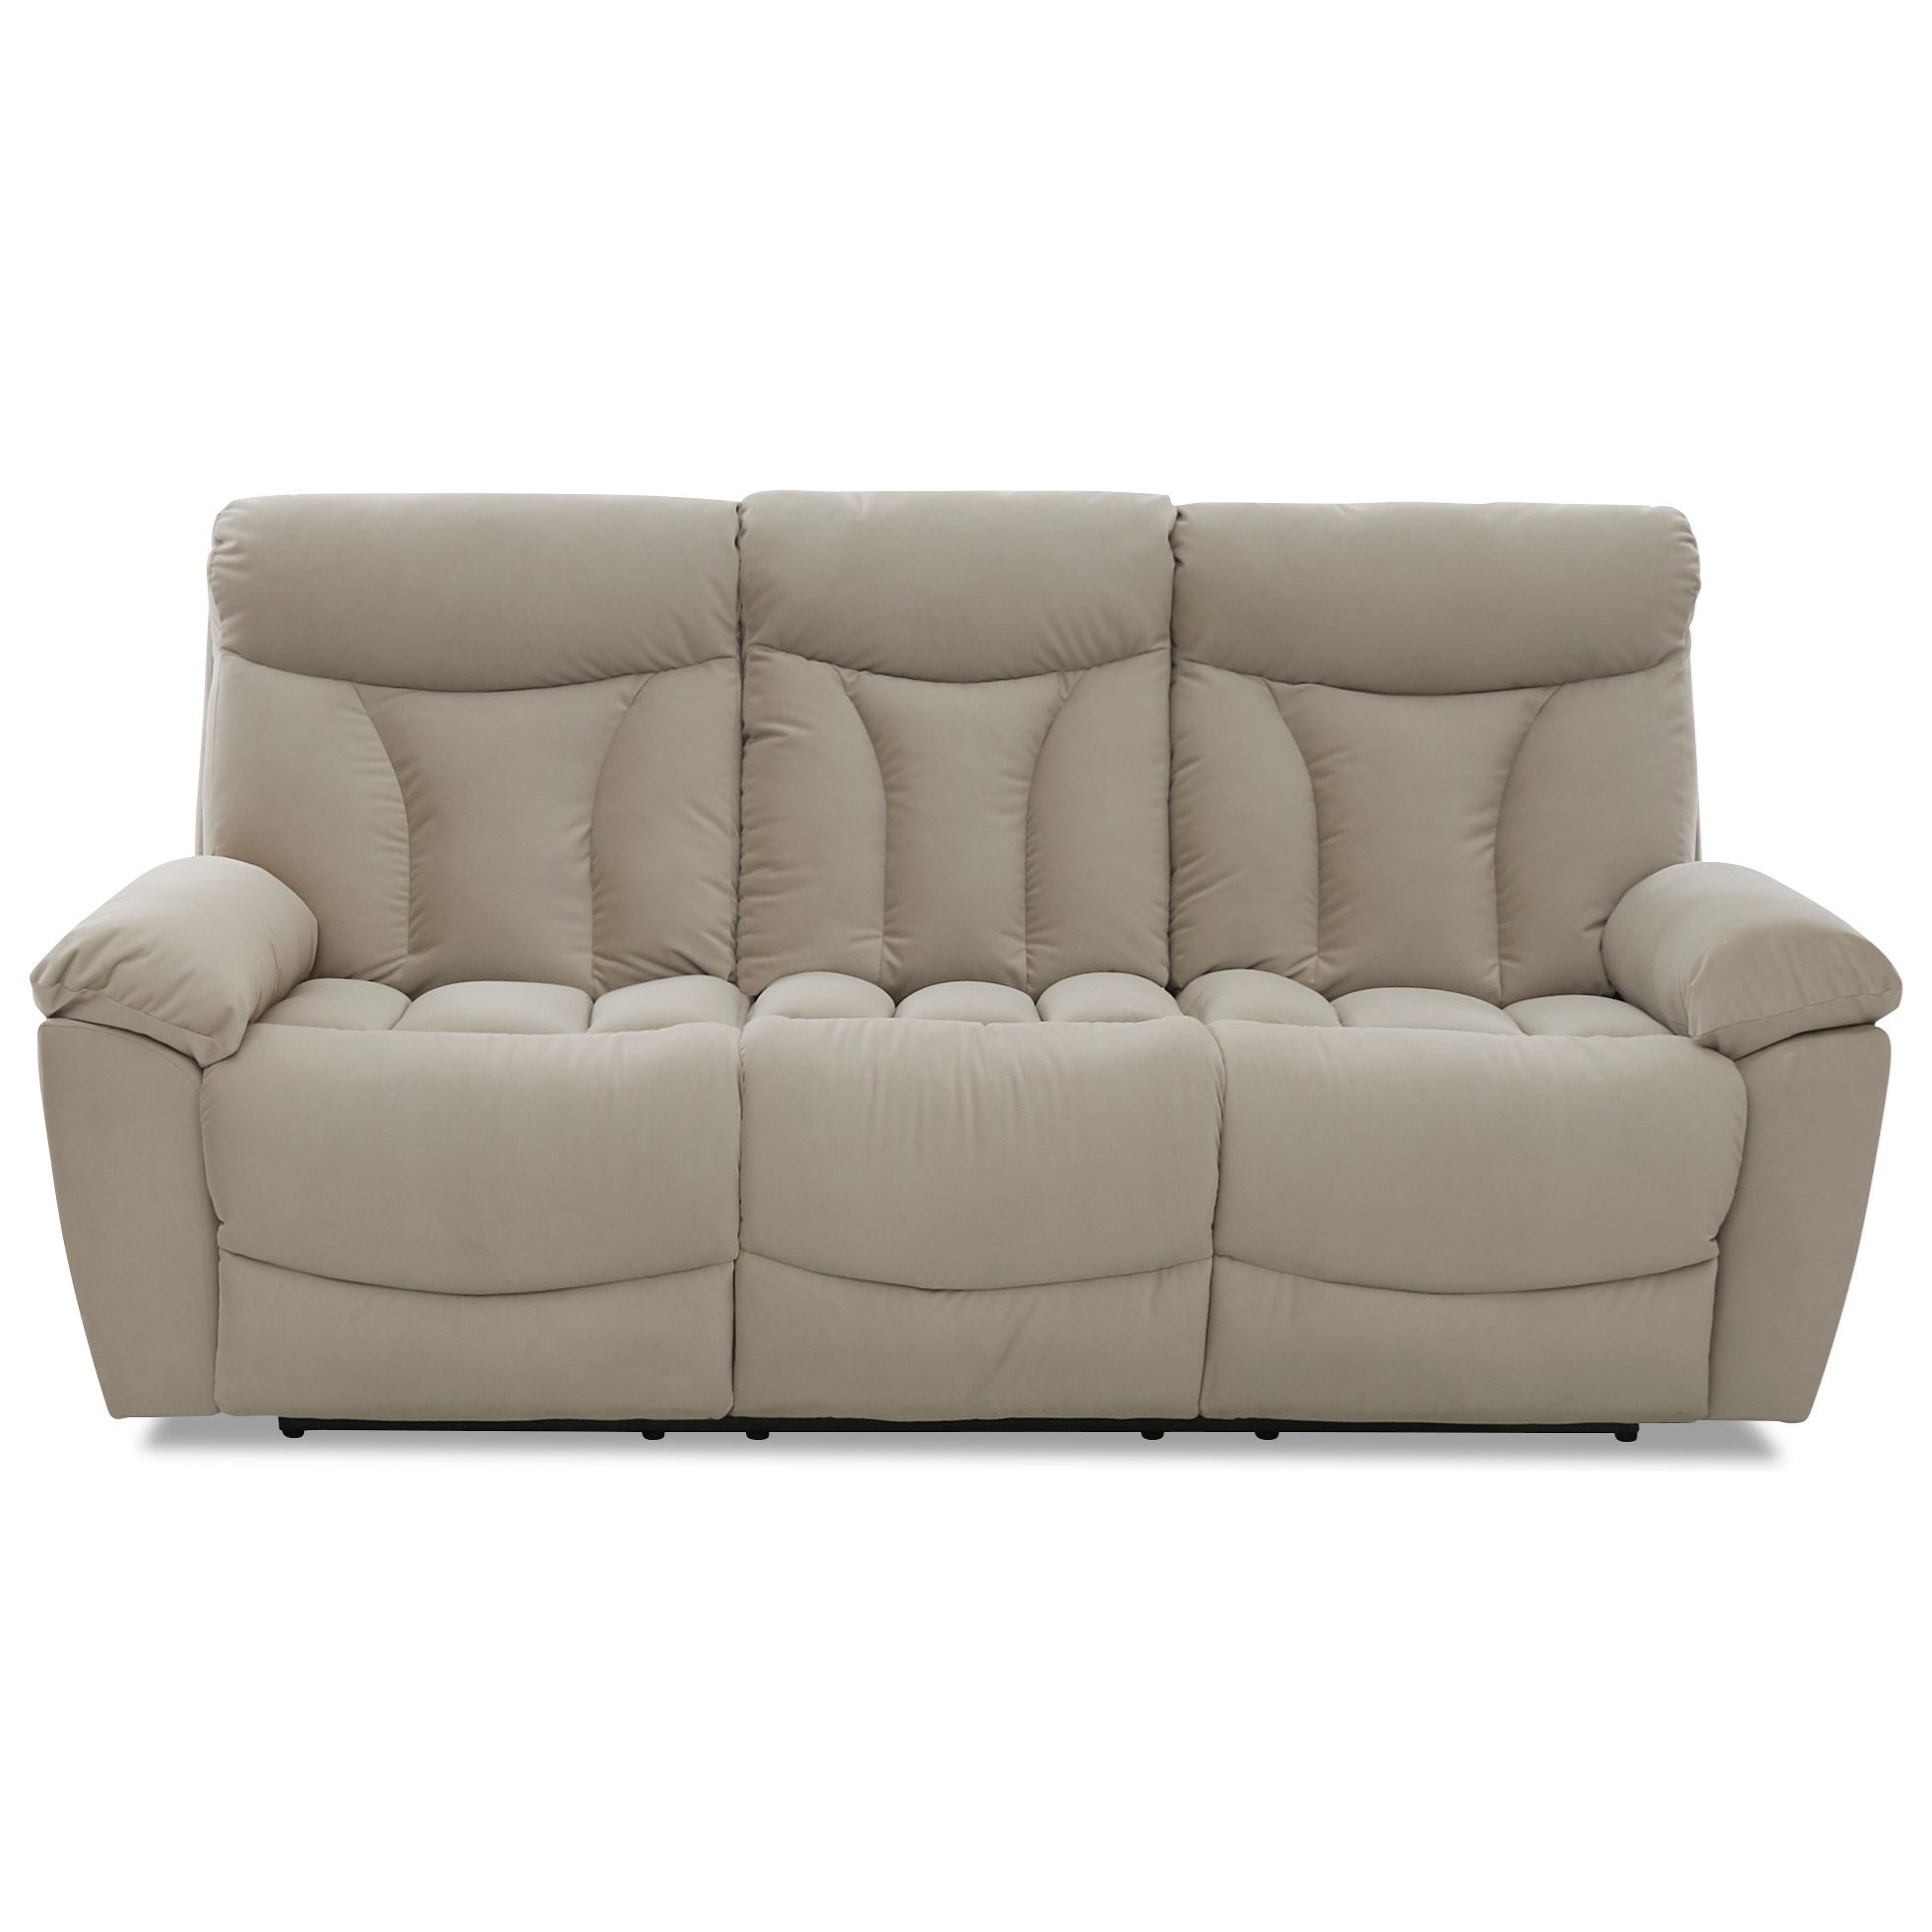 Deluxe Reclining Sofa by Klaussner at Johnny Janosik